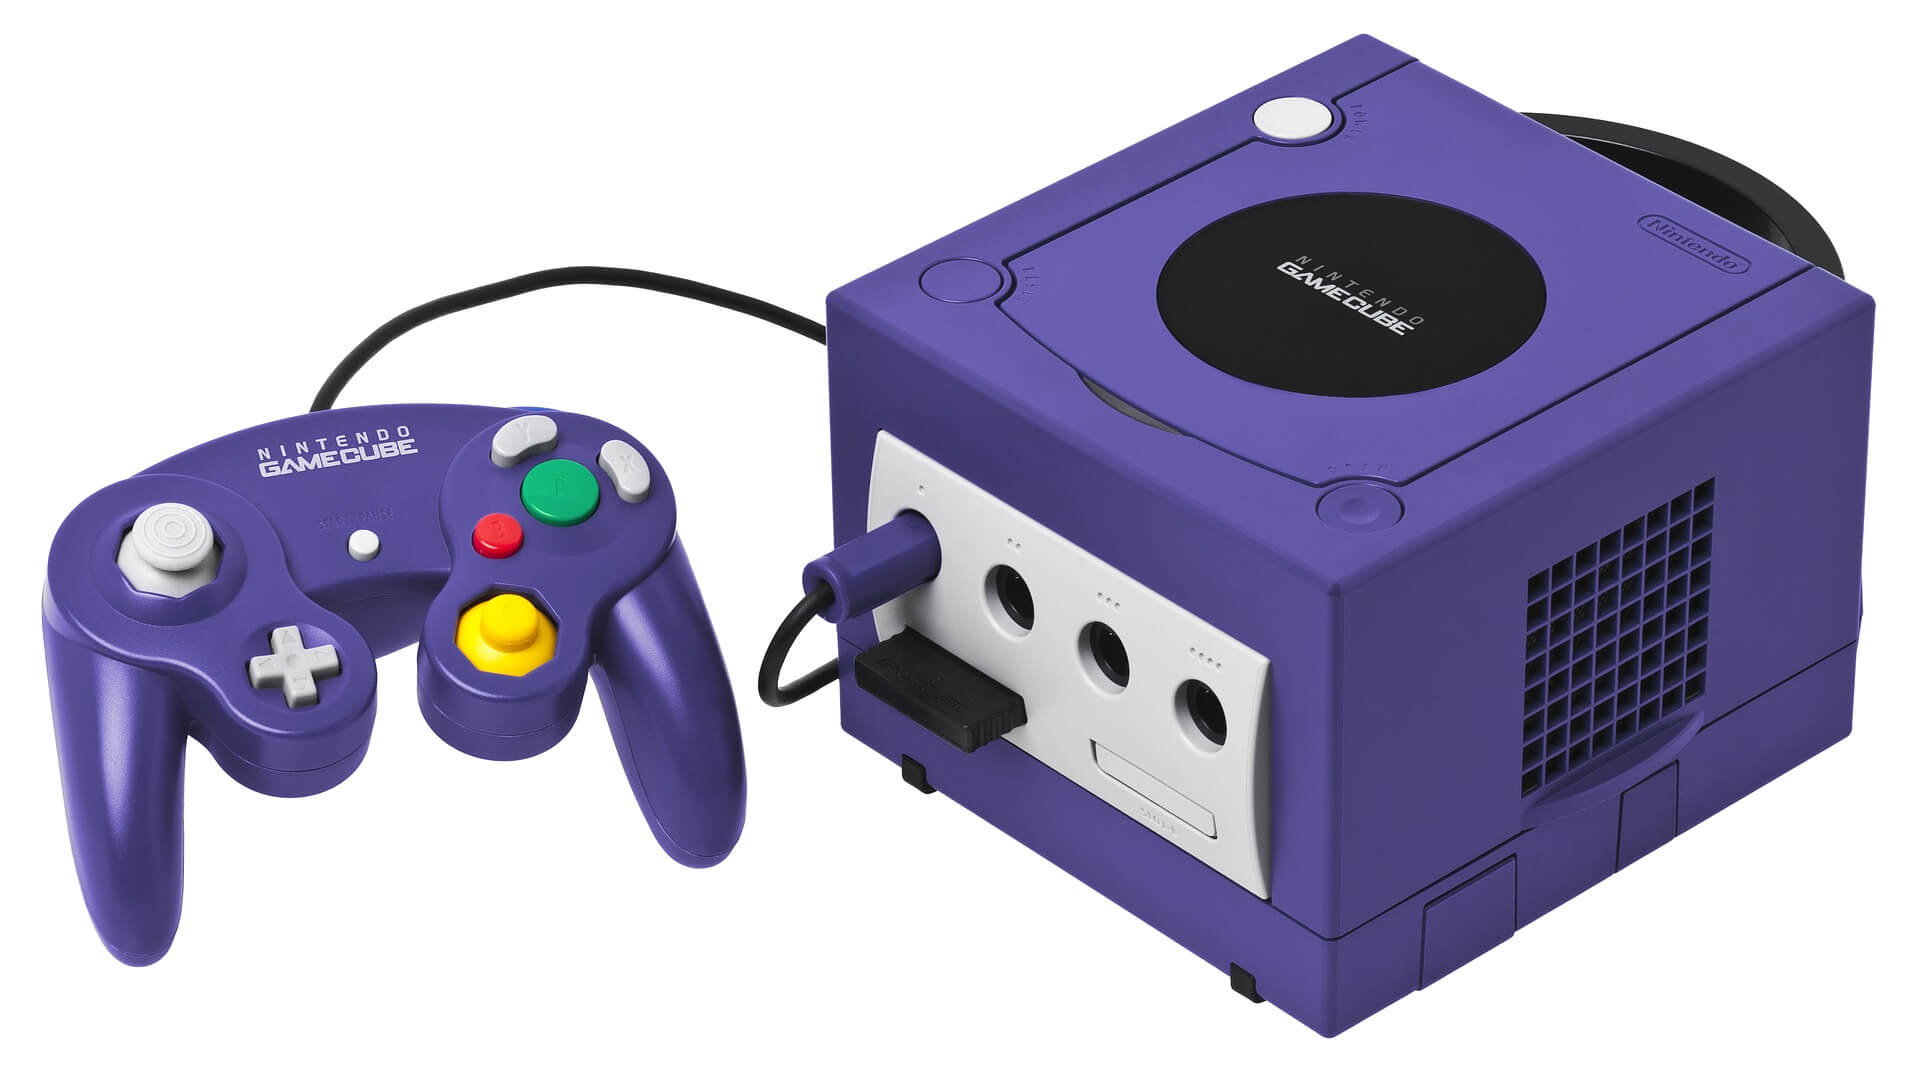 gamecube-emulators-android-featured-image